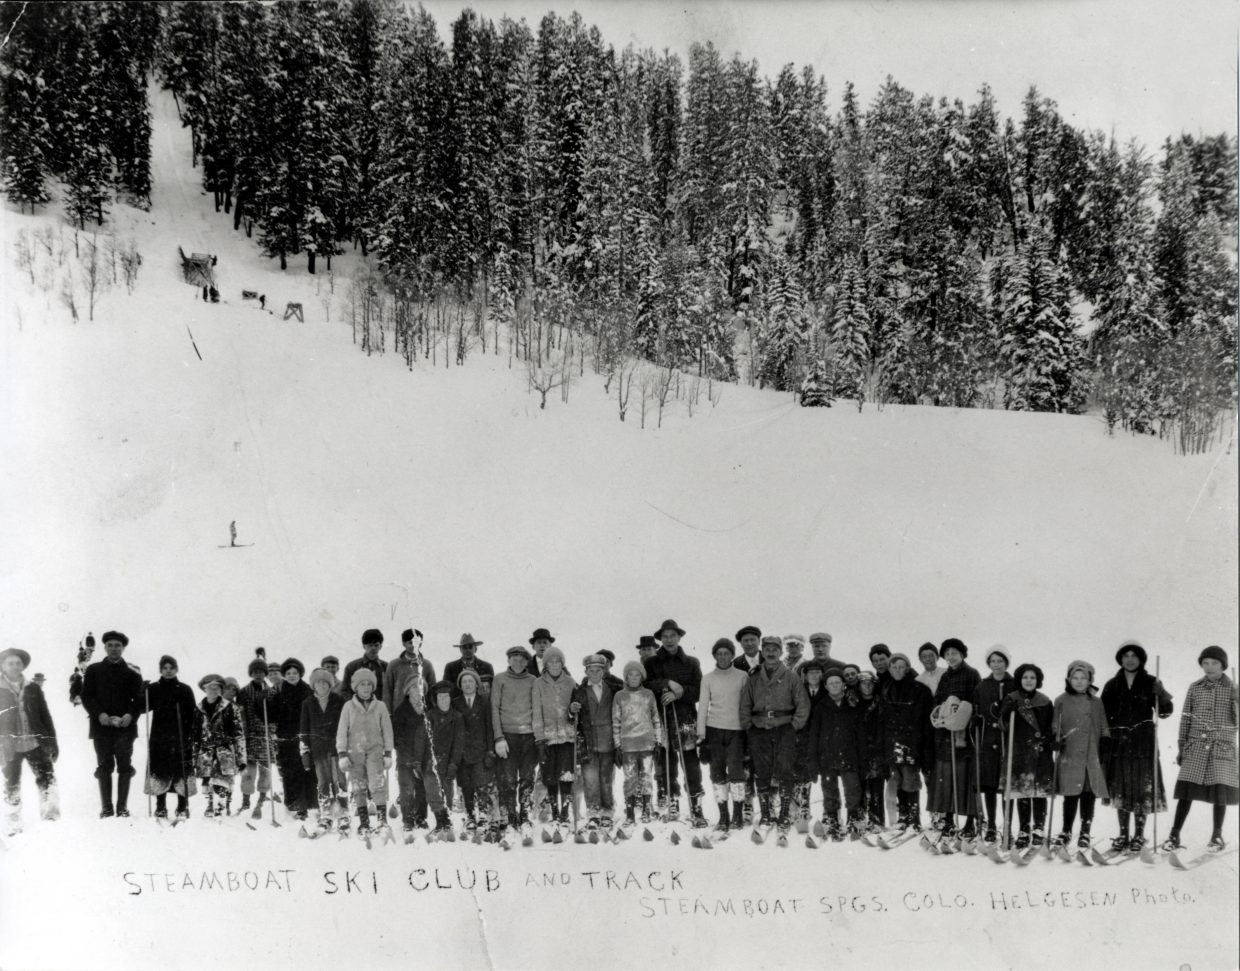 First known photo of the Steamboat Ski Club with coach Carl Howelsen; circa 1915.